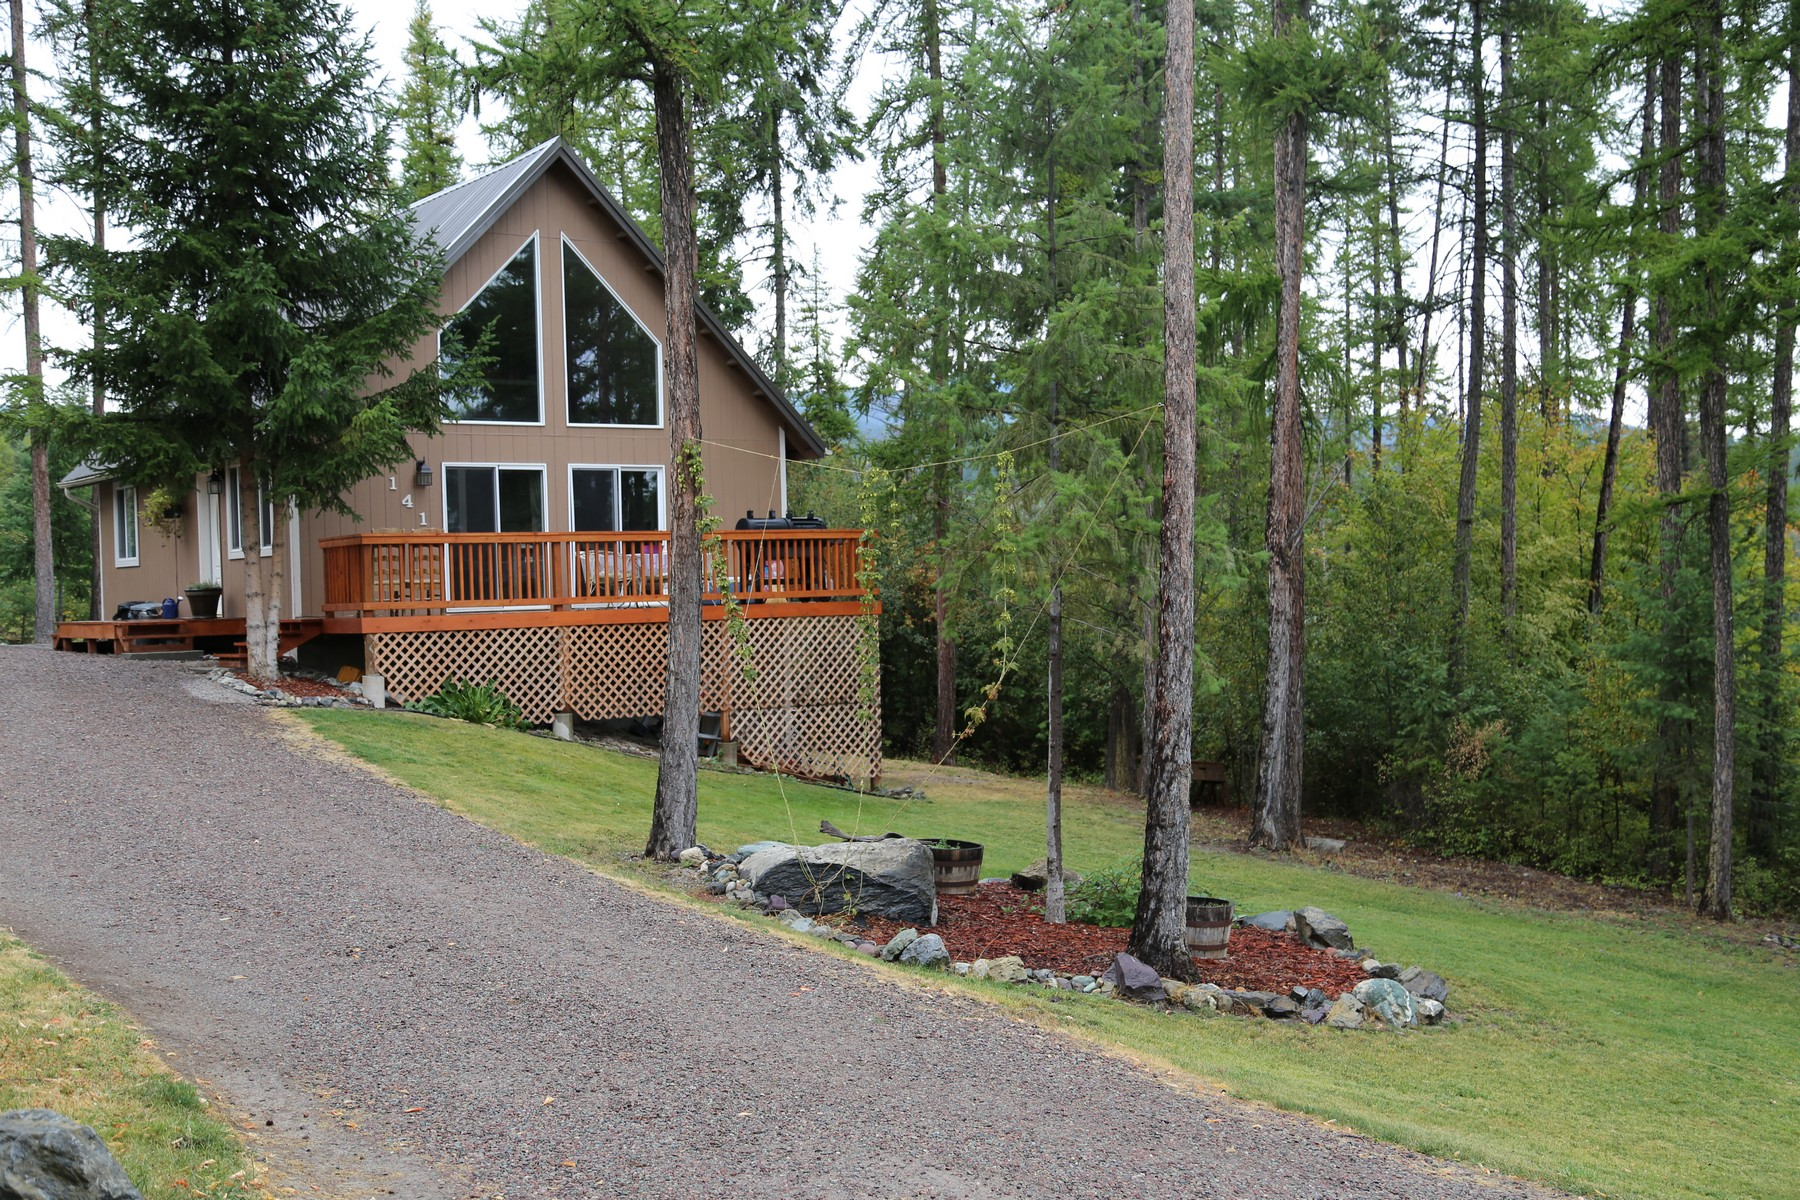 Single Family Home for Sale at 141 Tamarack Woods Dr , Lakeside, MT 59922 141 Tamarack Woods Dr Lakeside, Montana 59922 United States